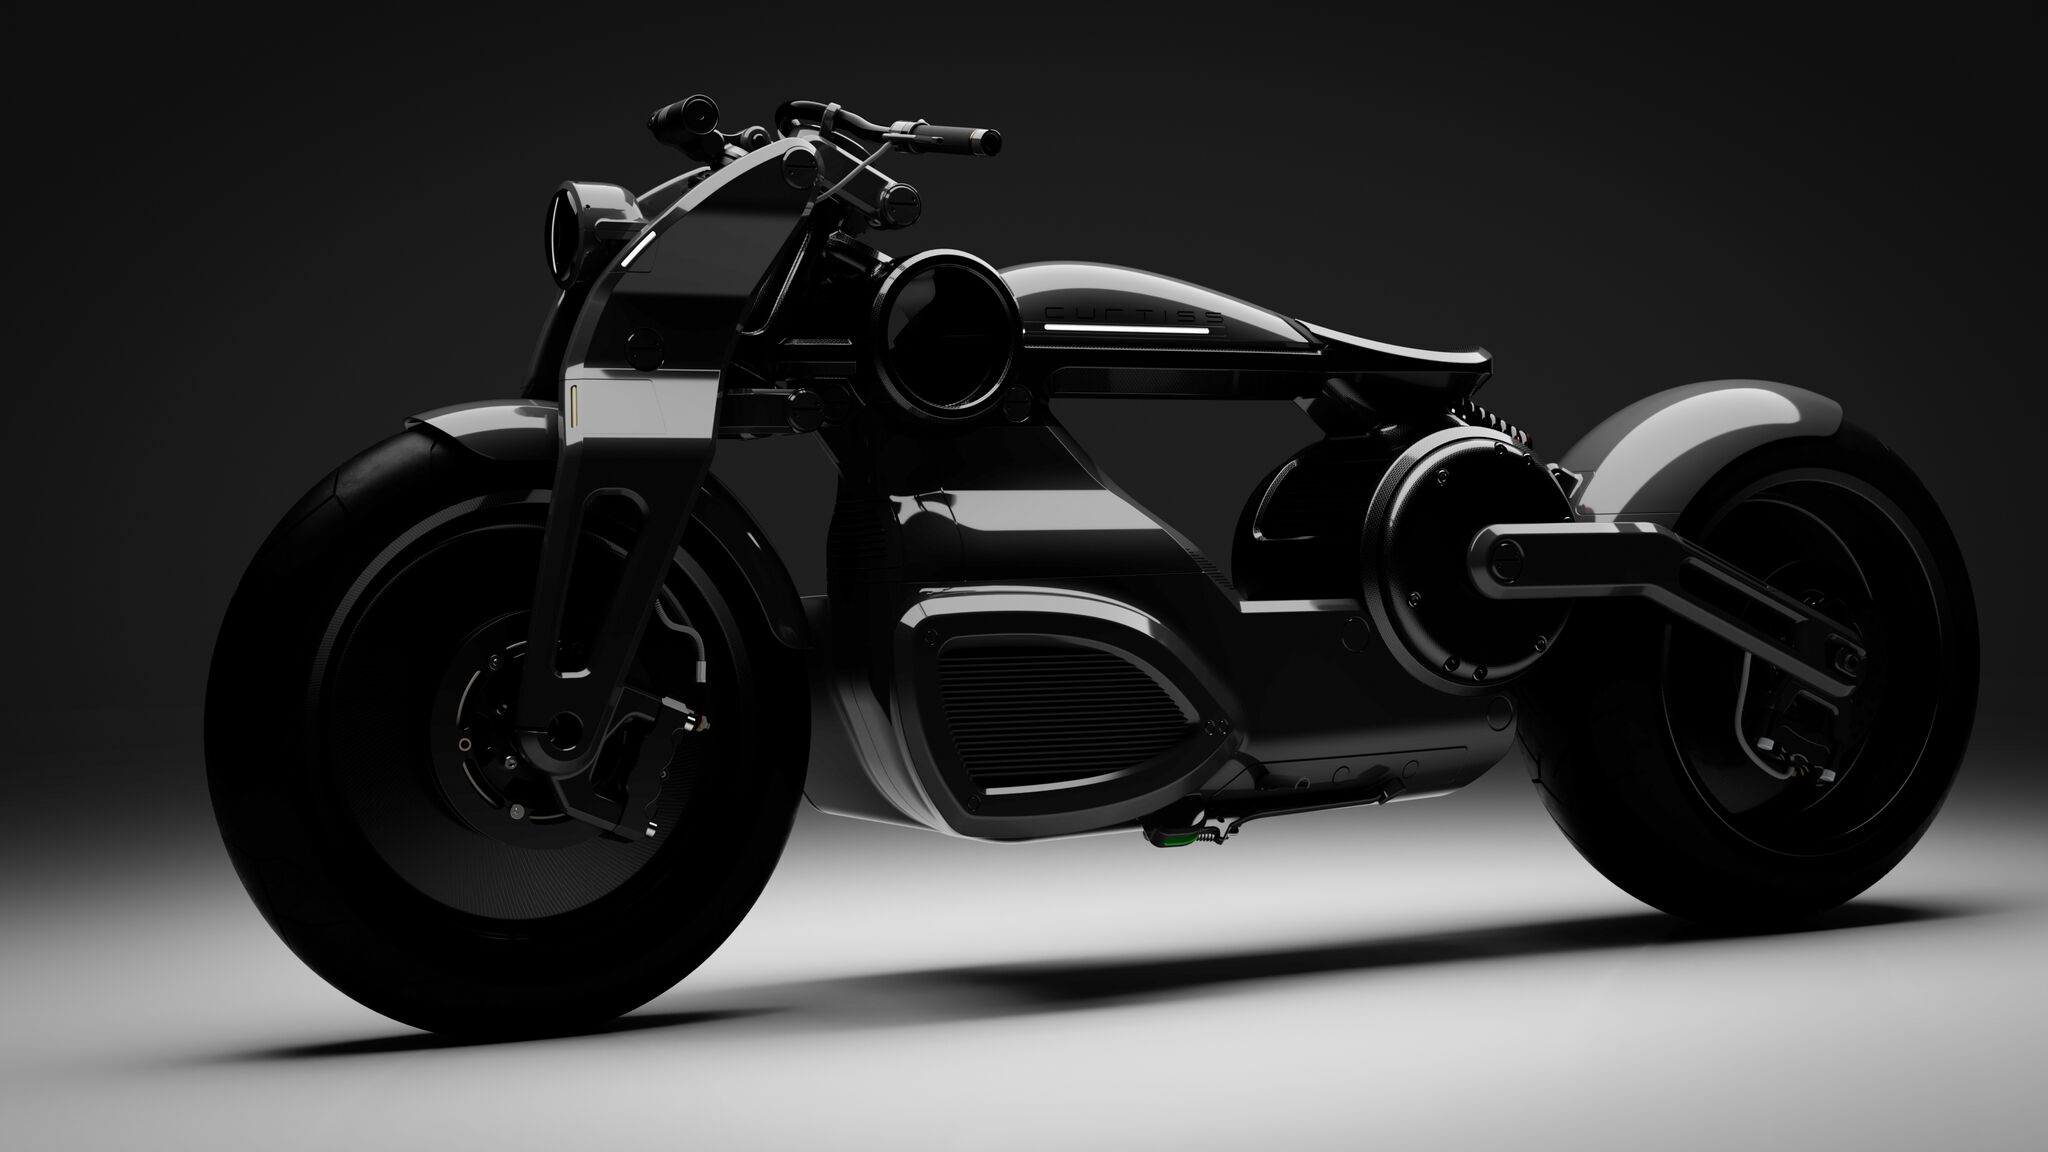 Now The Company Has Unveiled Its New Designs Fleshing Out Zeus Electric Motorcycle Concept Into Two Production Ready Versions A Cafe Racer And